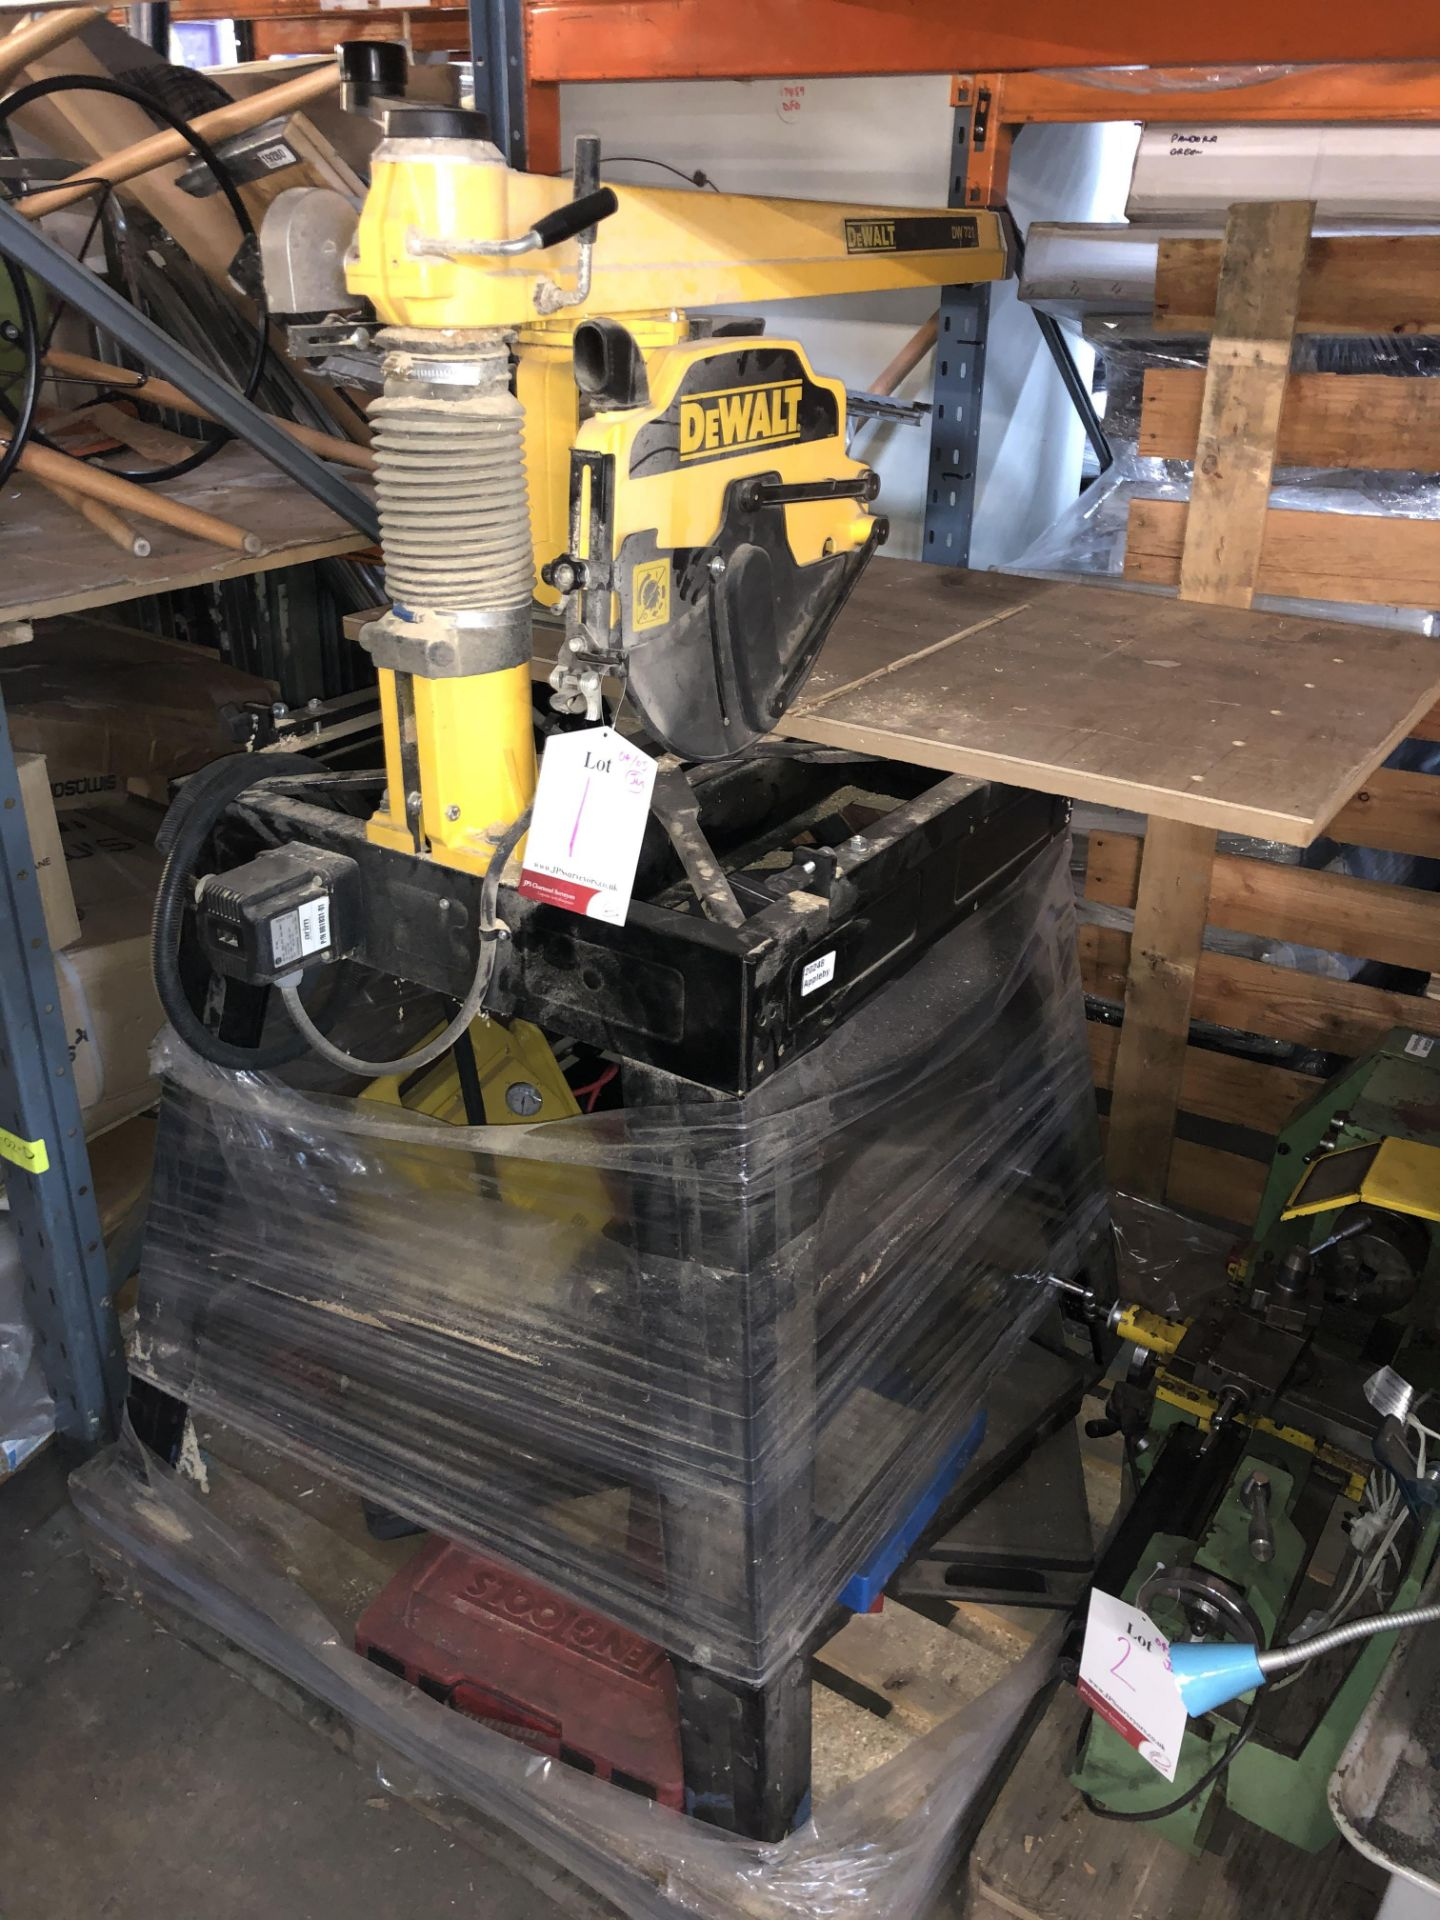 Lot 1 - Dewalt DW721 Radial Arm Saw w/ Stand